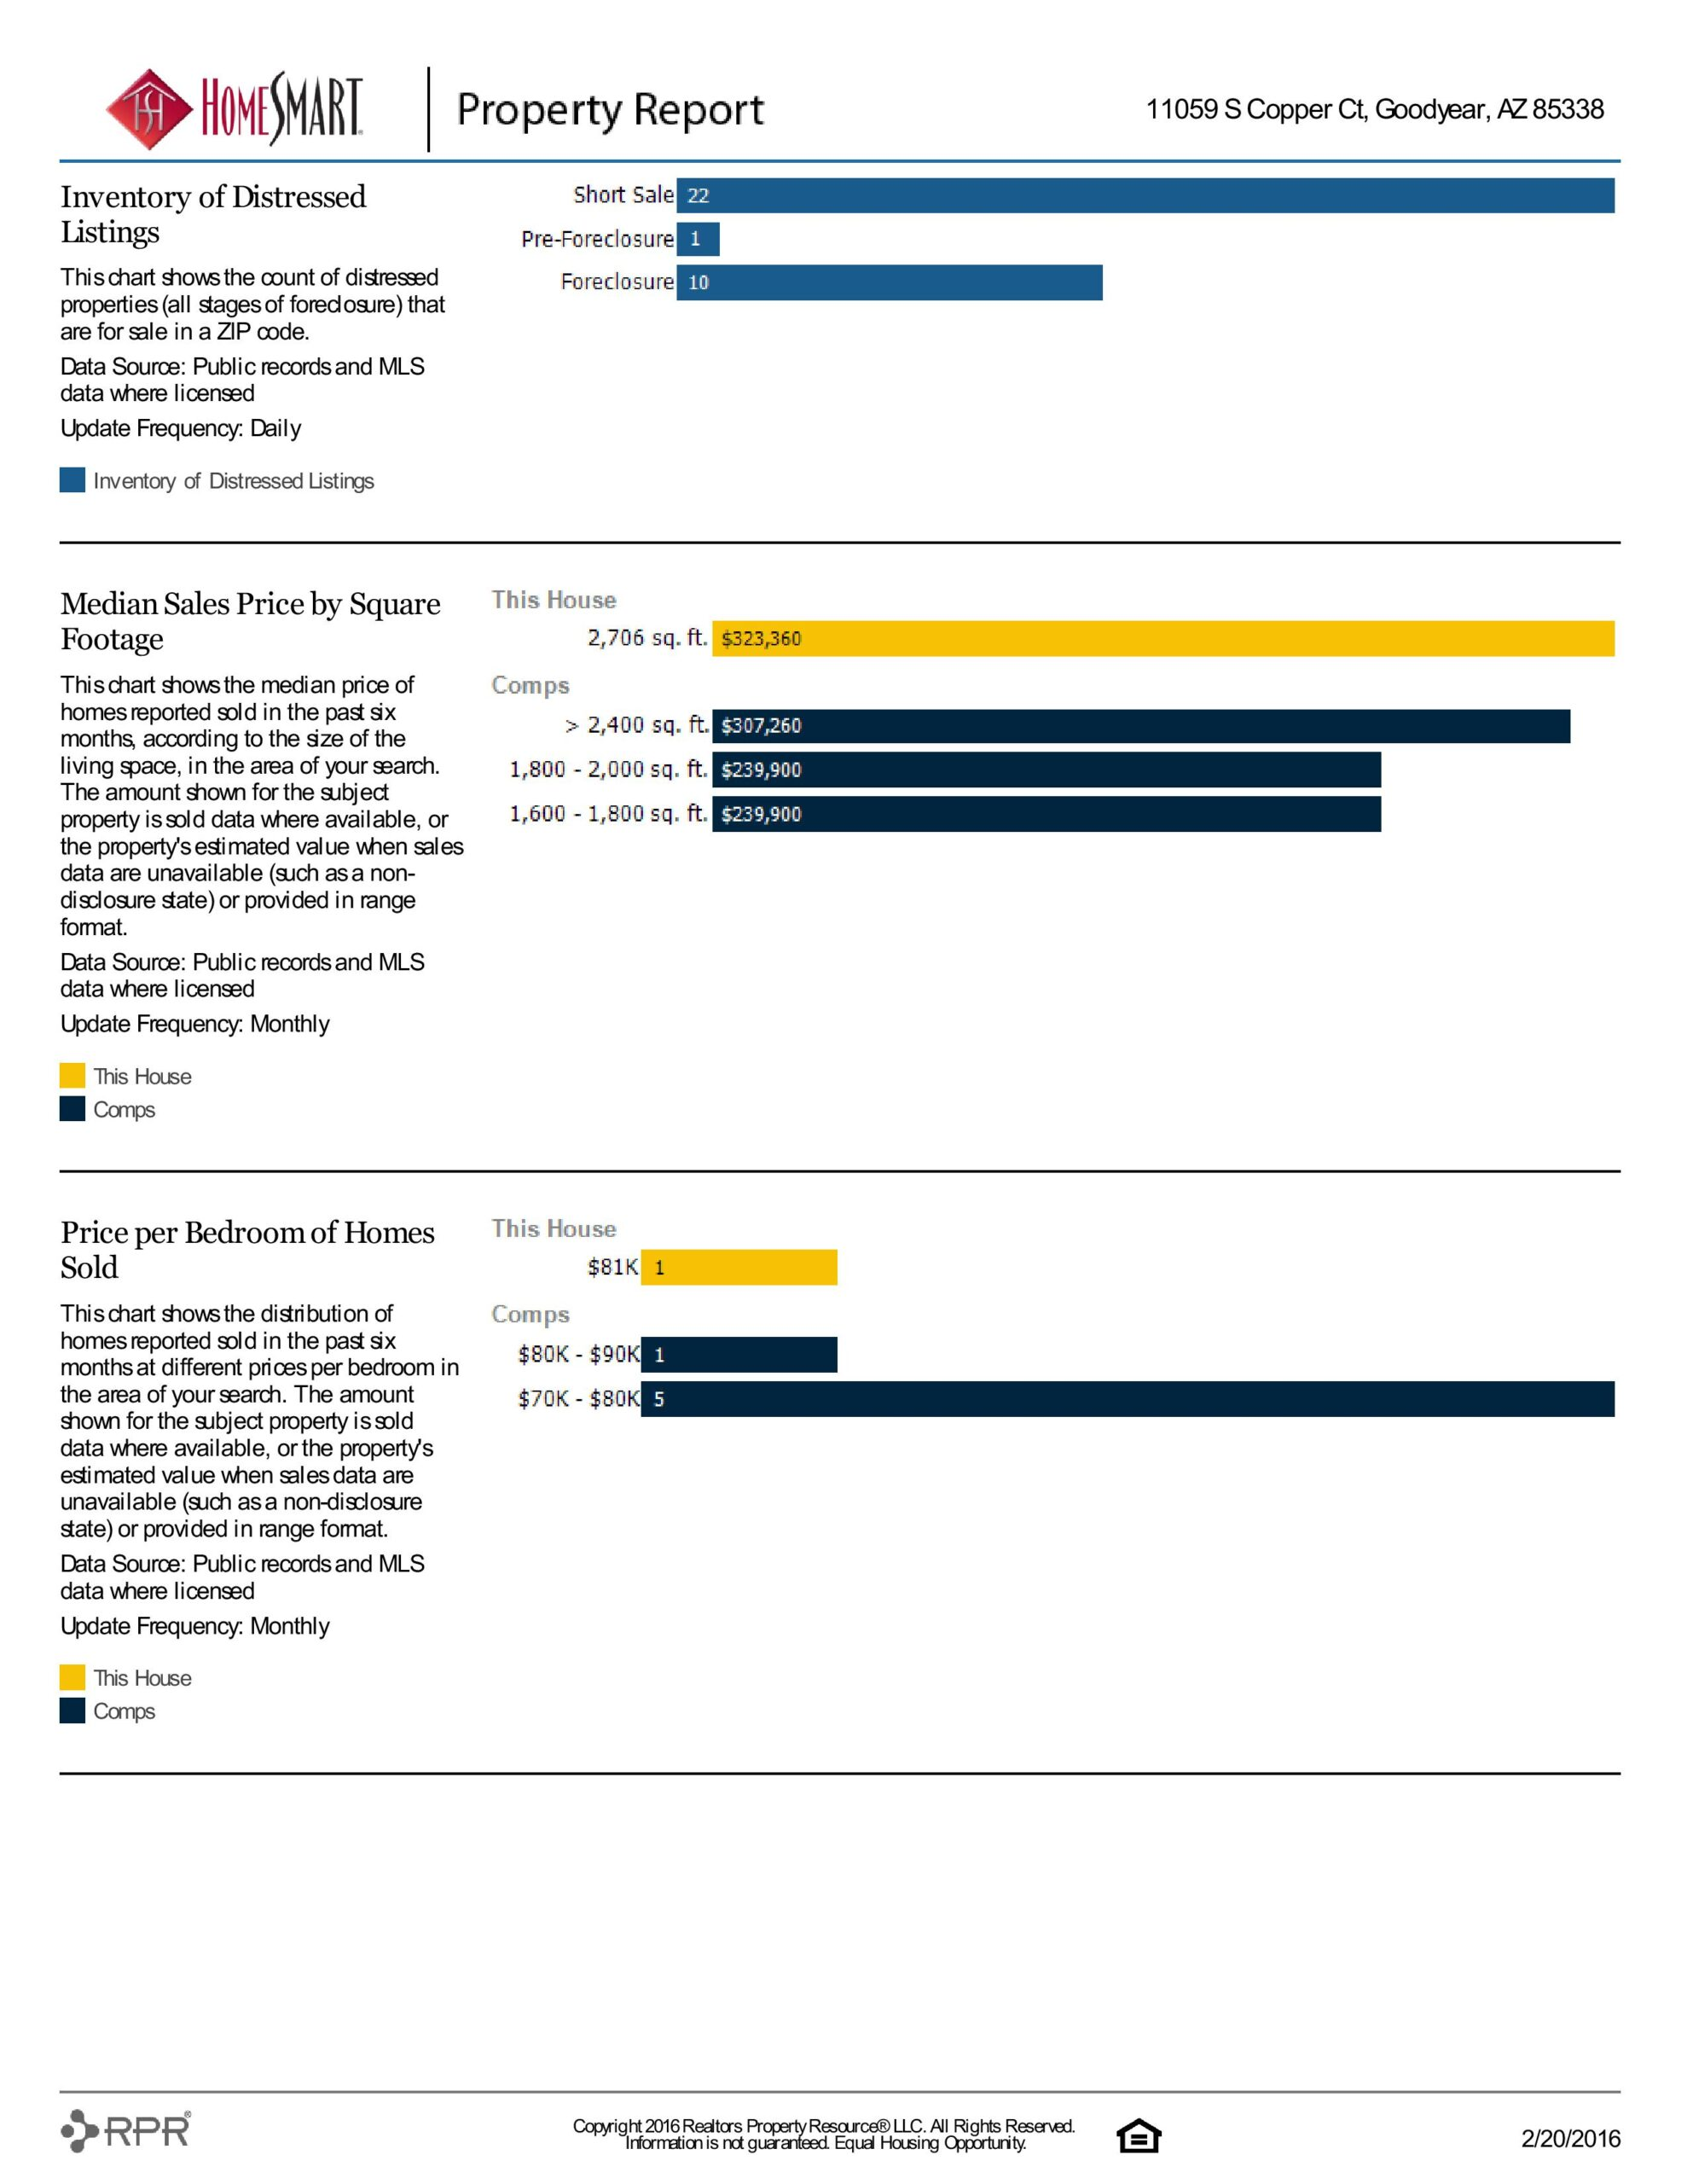 11059 S COPPER CT PROPERTY REPORT-page-019